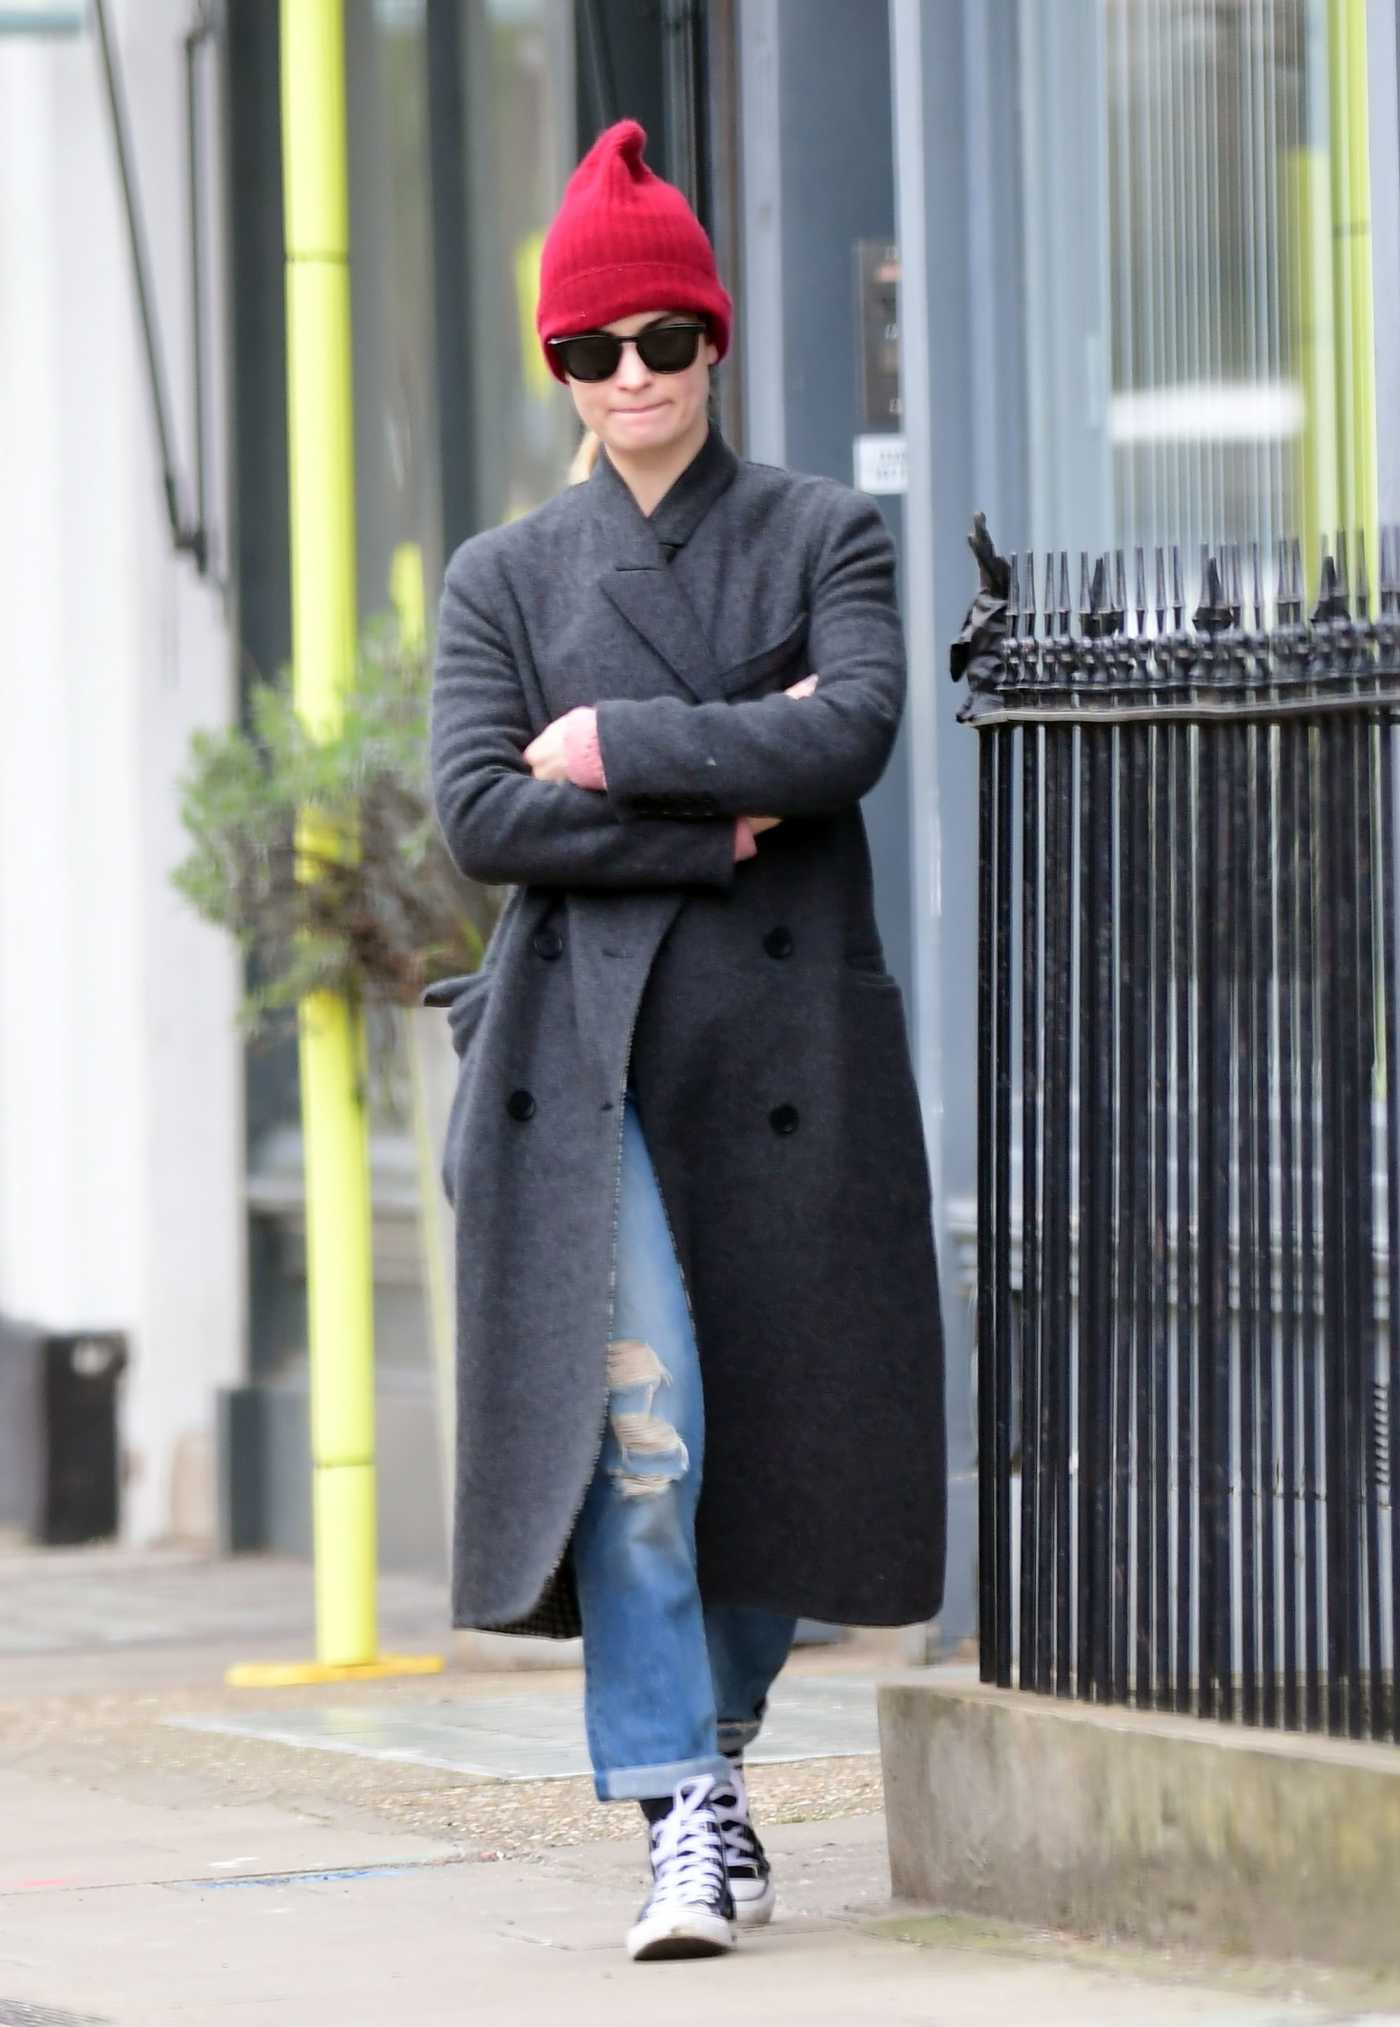 Lily James in a Red Knit Hat Was Spotted in North London 04/02/2020